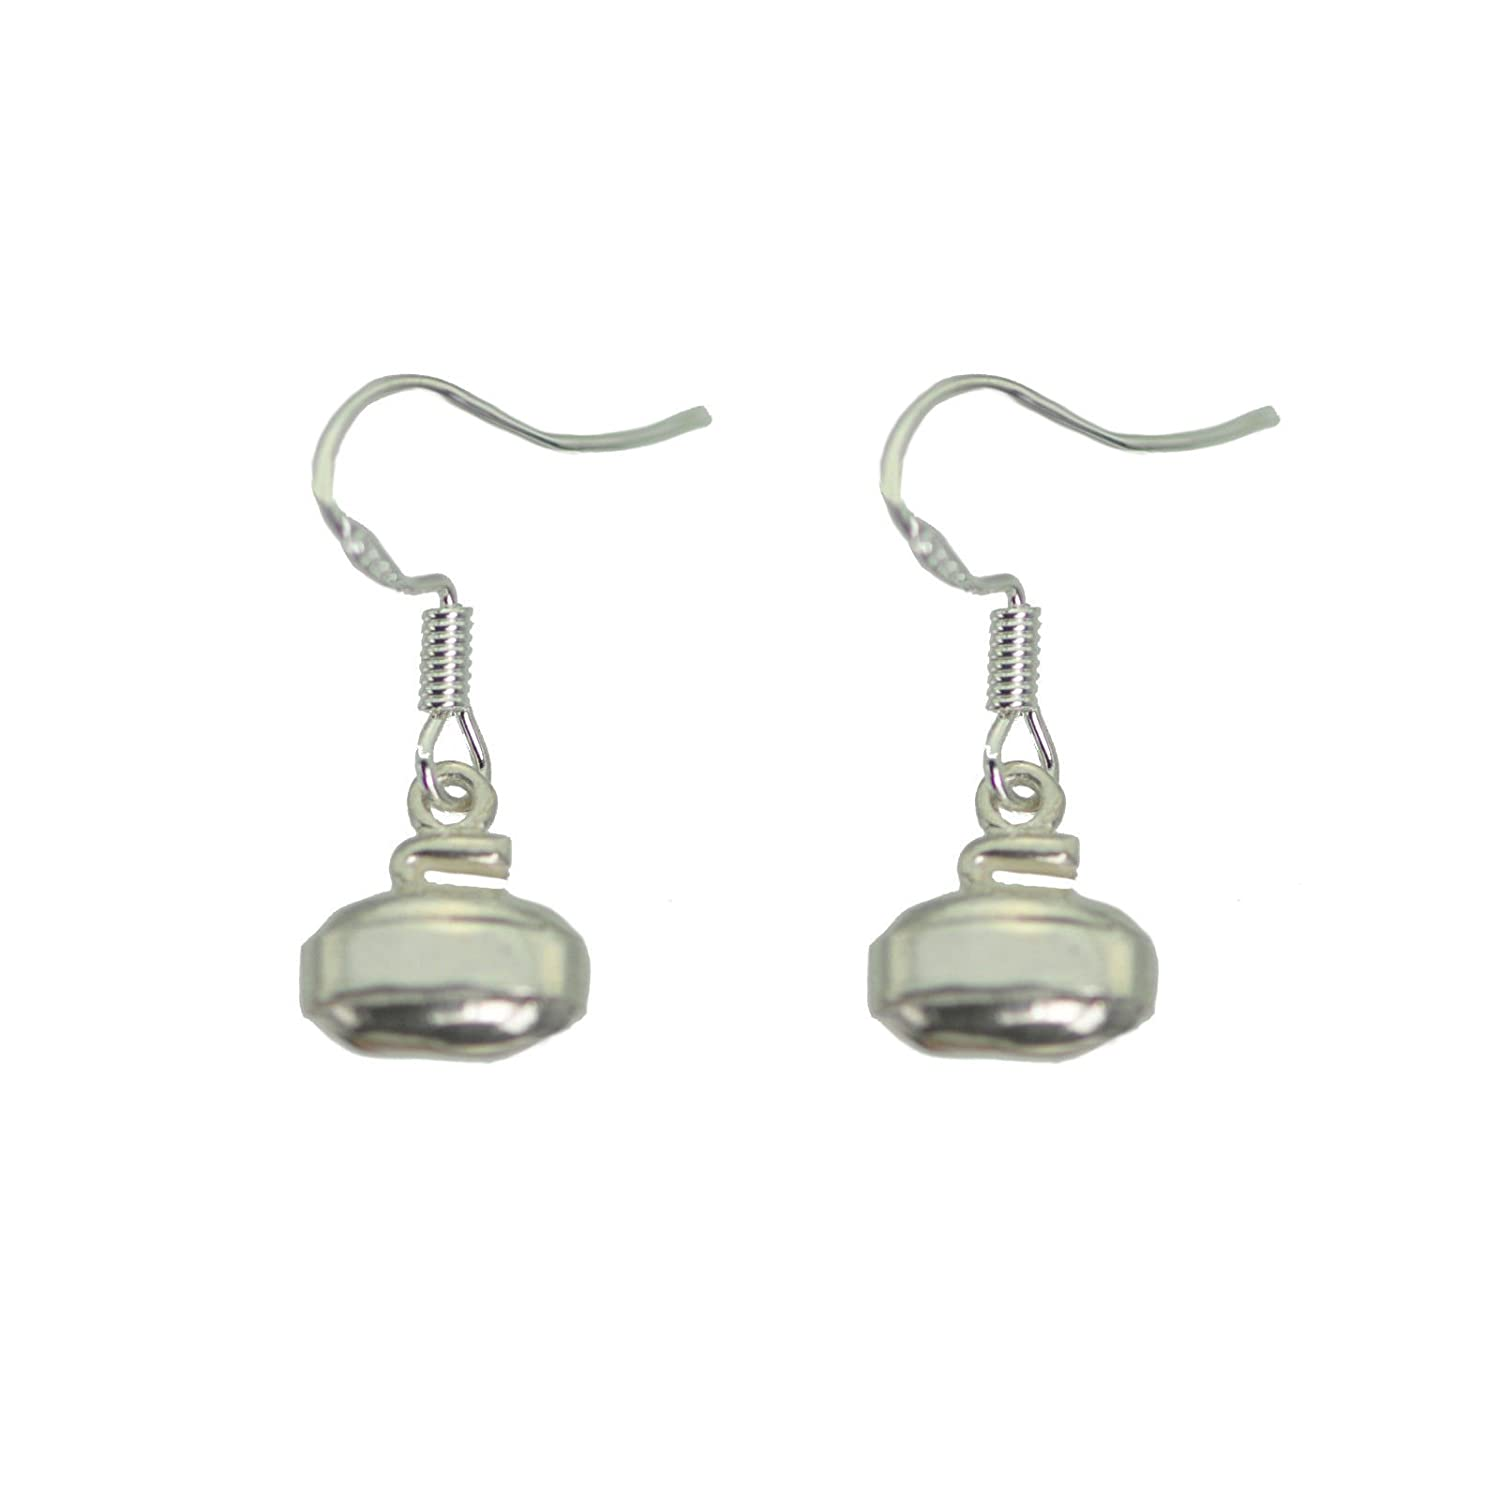 Genuine Sterling Silver 925 Jewelry Curling Rock Sport Earrings Detail New Prince of Diamonds Inc